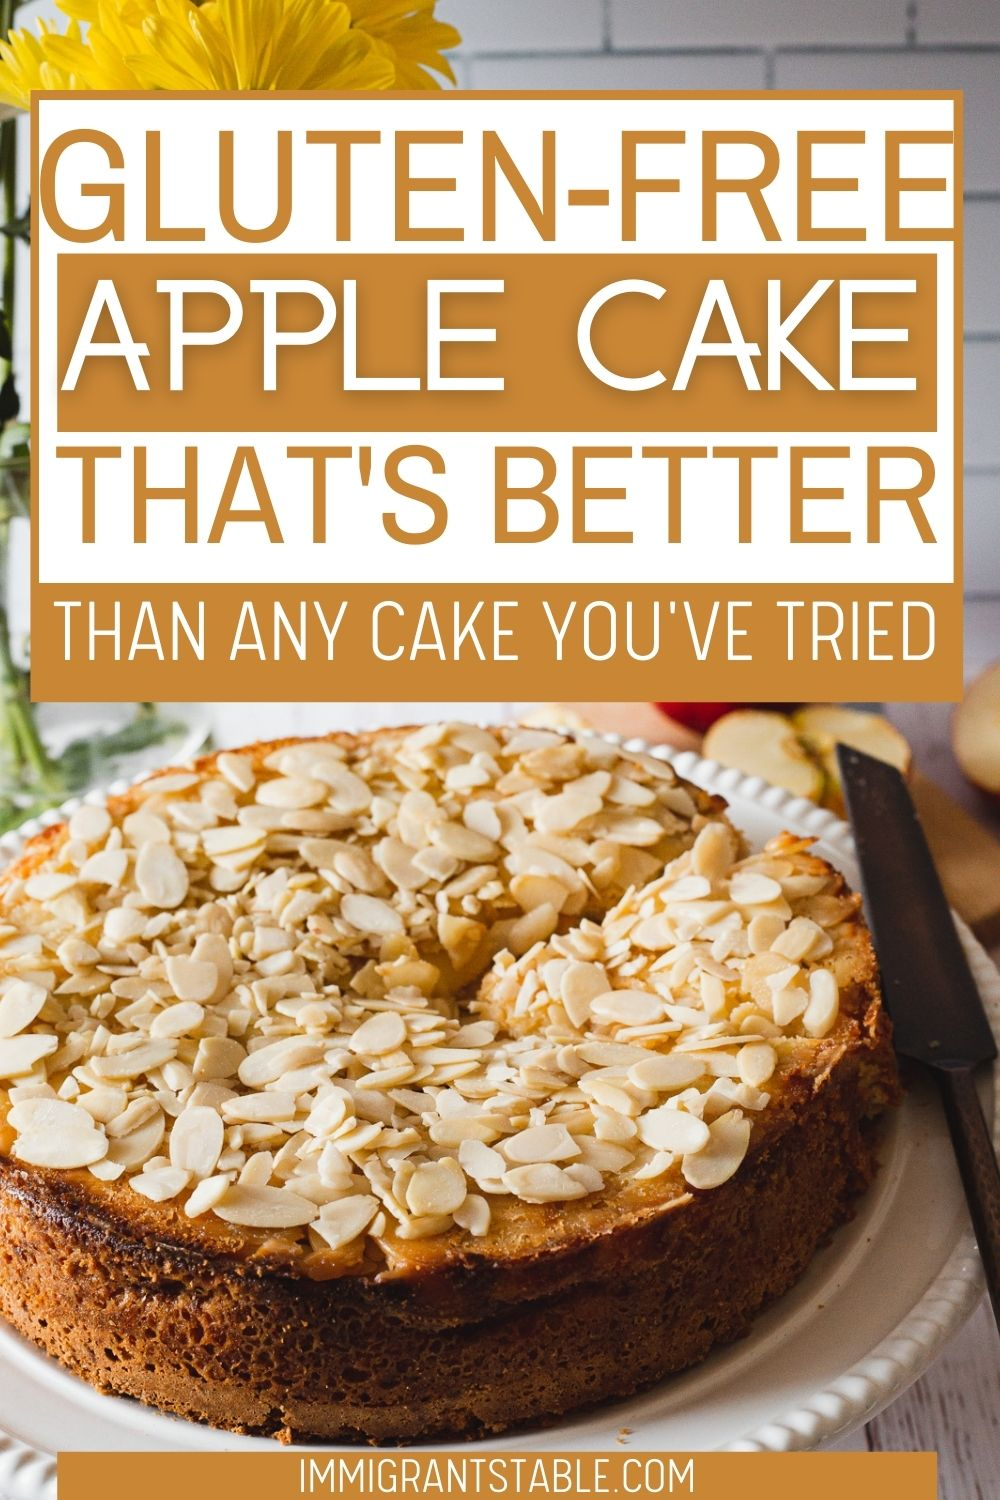 gluten-free apple cake that's better than any cake you've tried